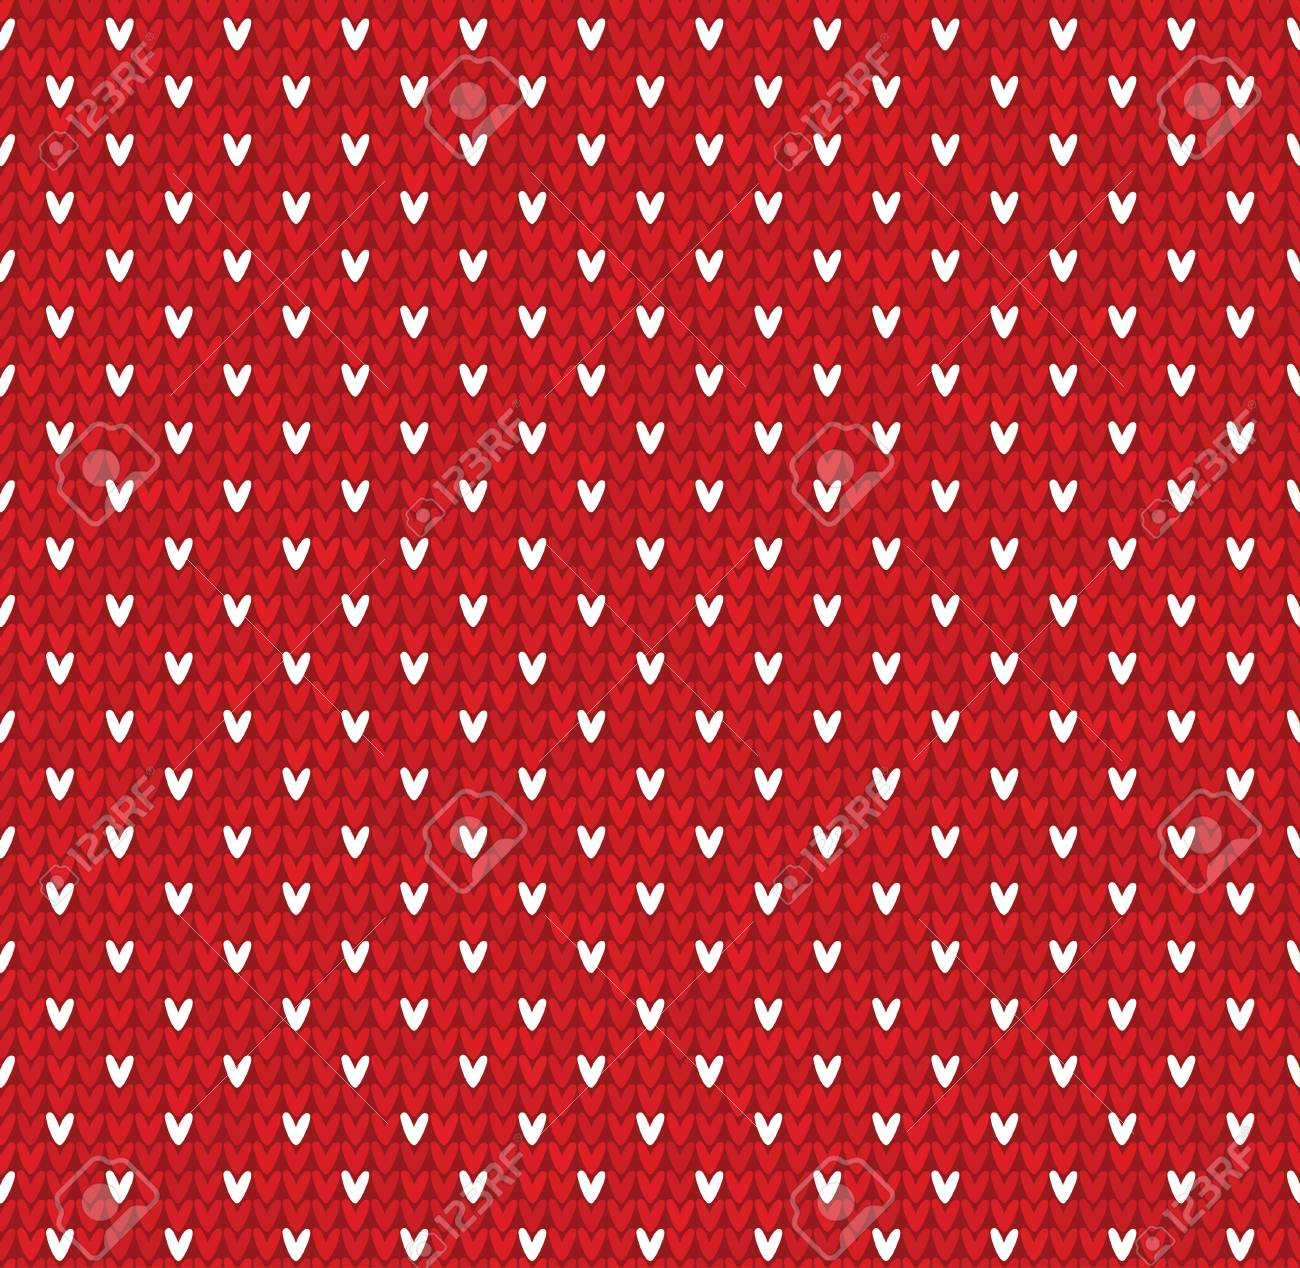 Knitted Pattern With Dots Snowflakes Royalty Free Cliparts, Vectors ...